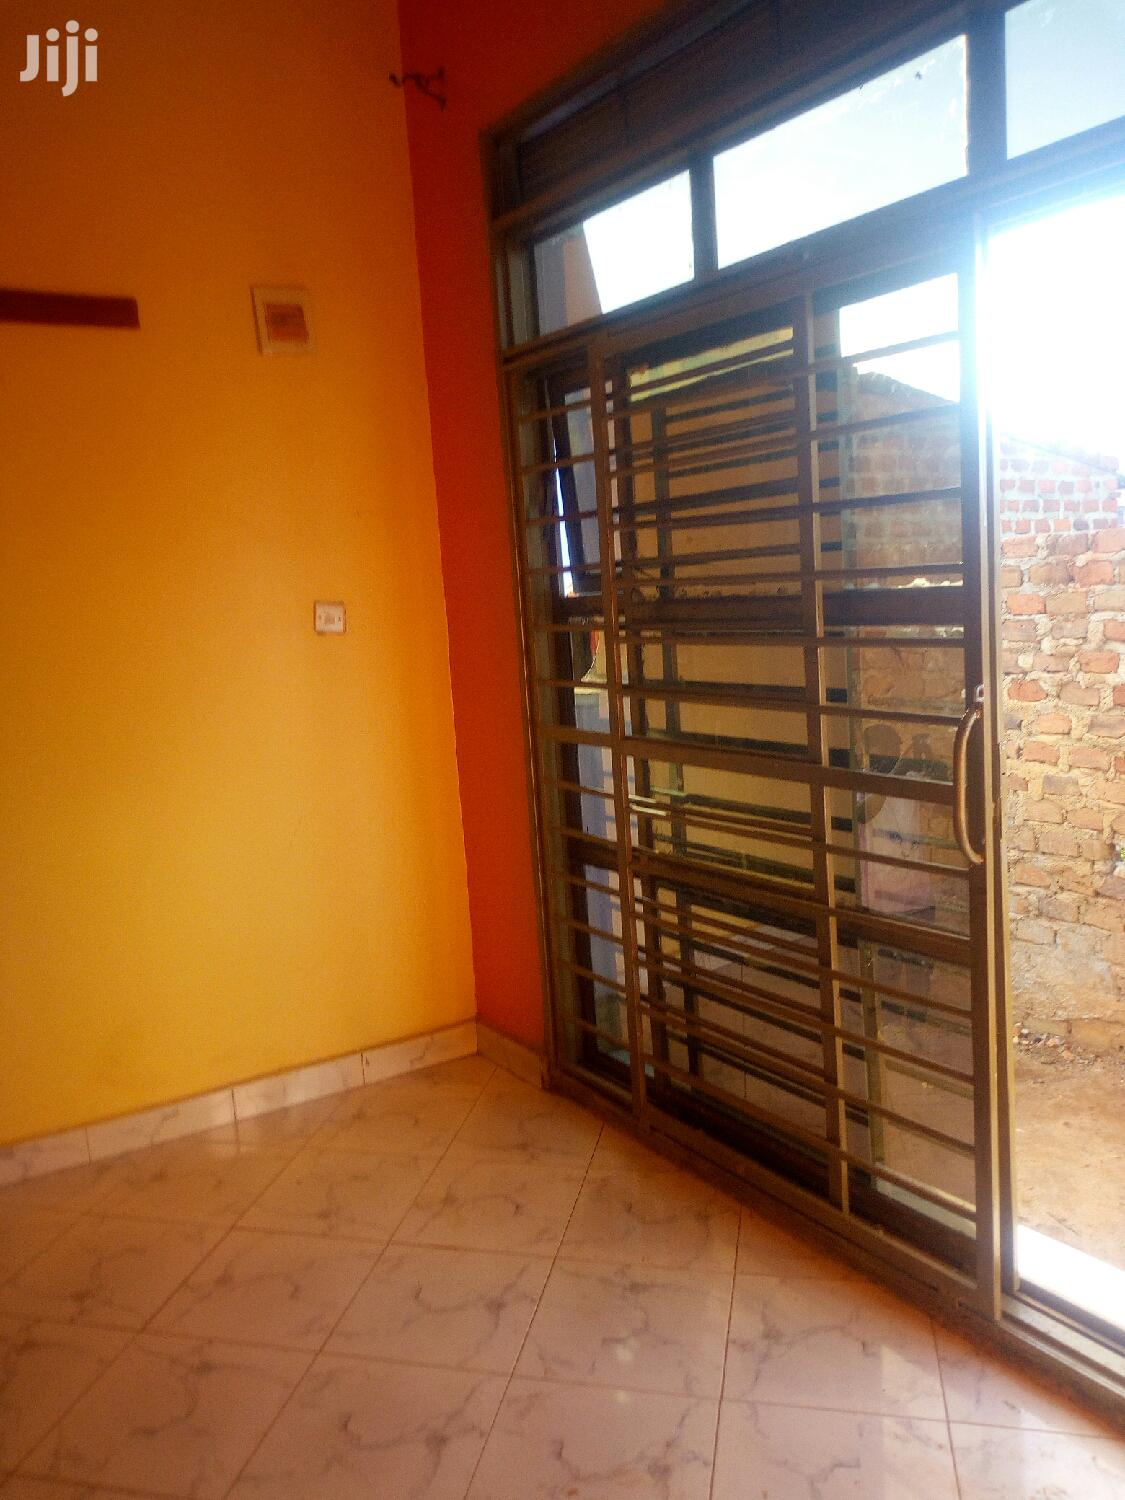 Single Room House For Rent In Kisaasi | Houses & Apartments For Rent for sale in Wakiso, Central Region, Uganda